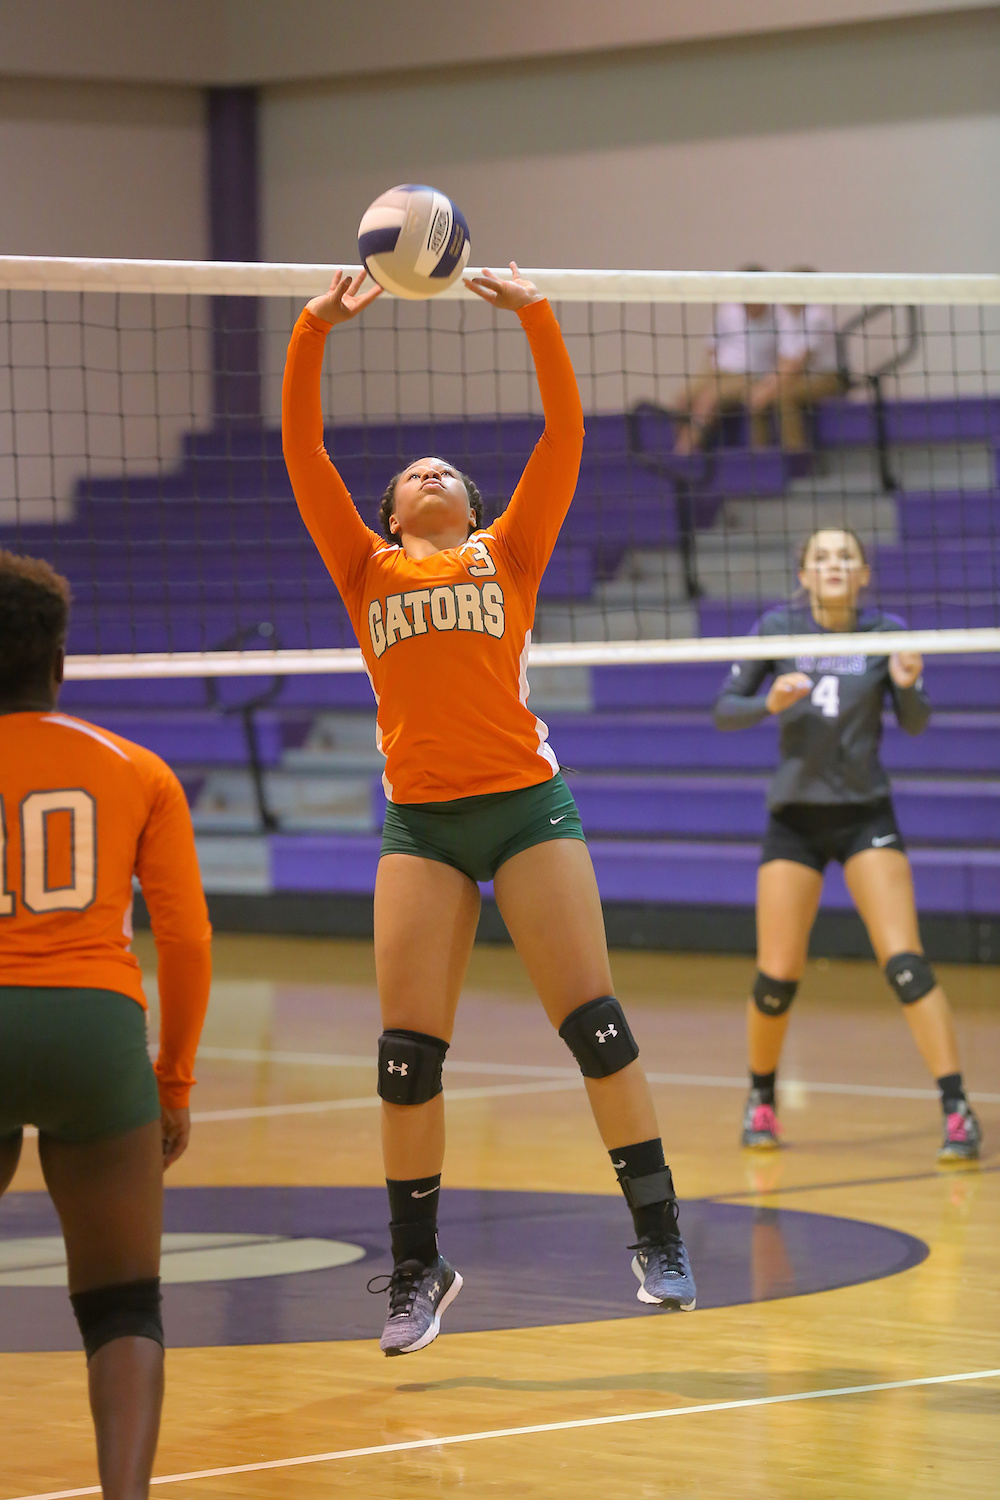 East Columbus v West Bladen volleyball 2017 9